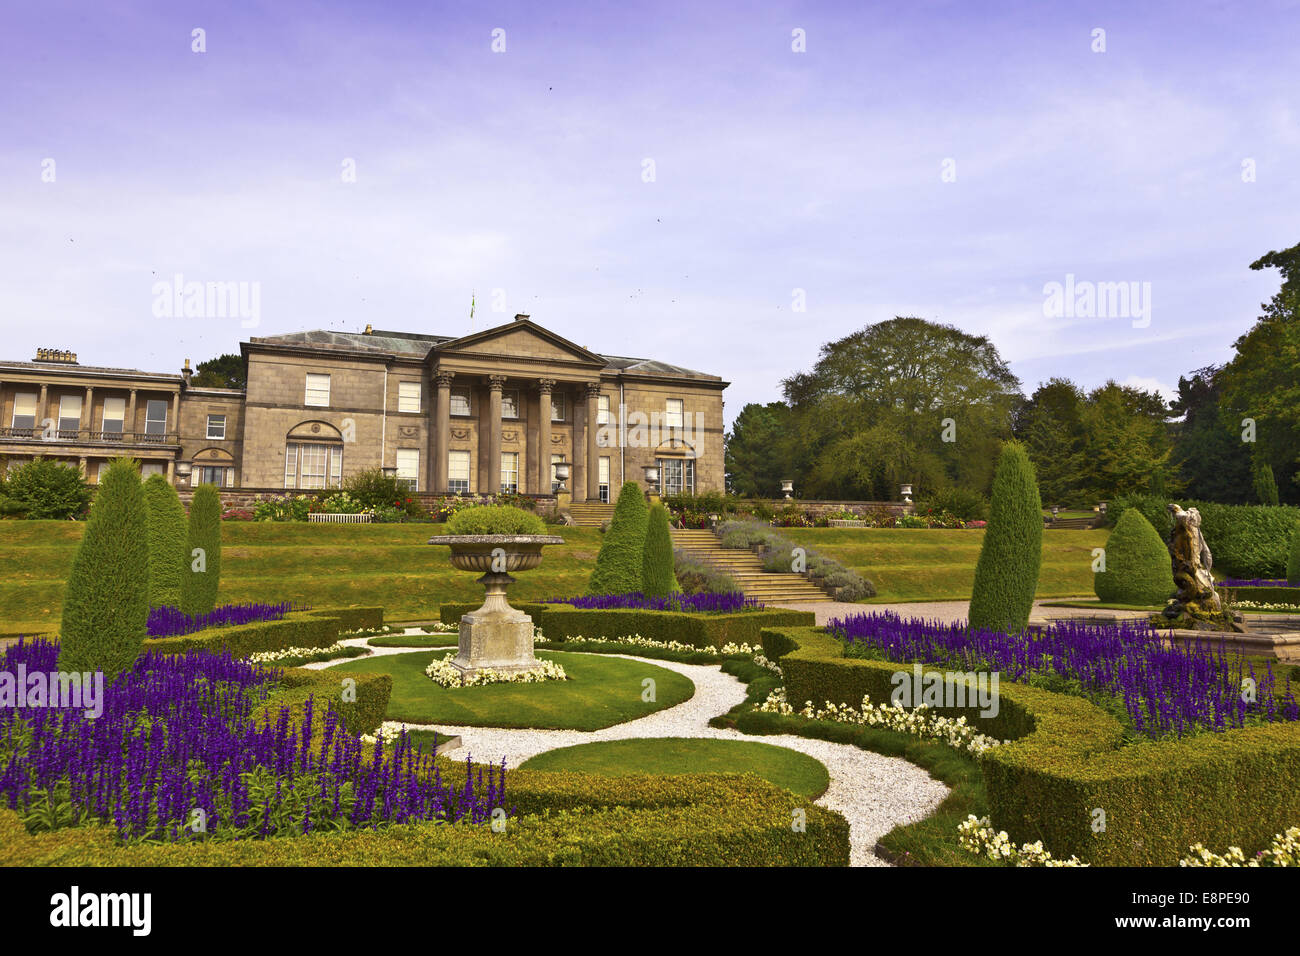 English landscaped garden and an historic neoclassical mansion. - Stock Image